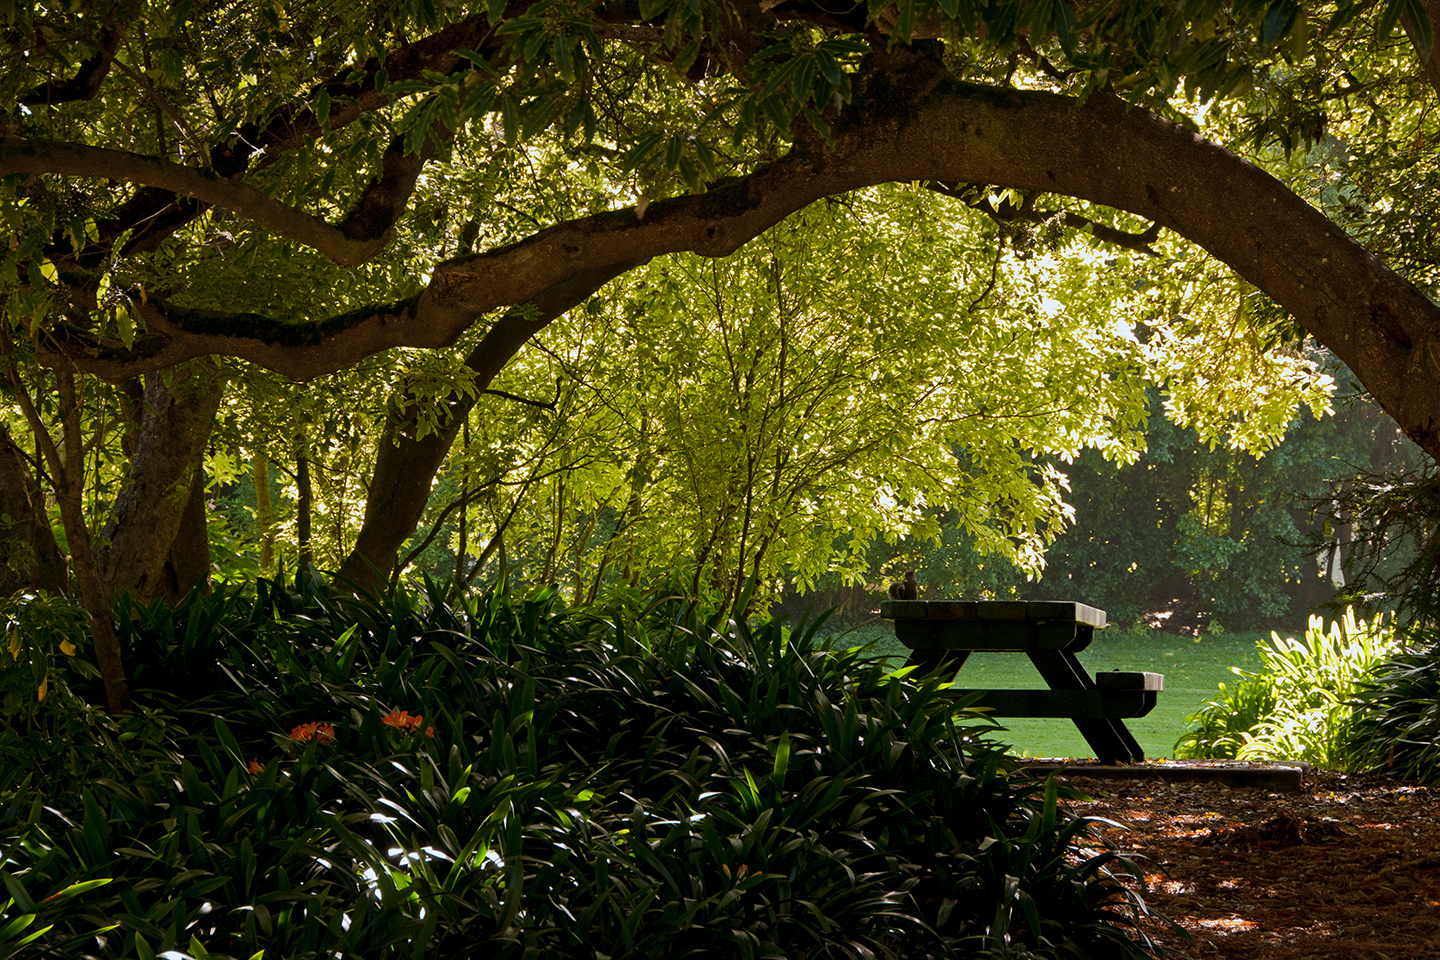 Golden Gate Park Bench